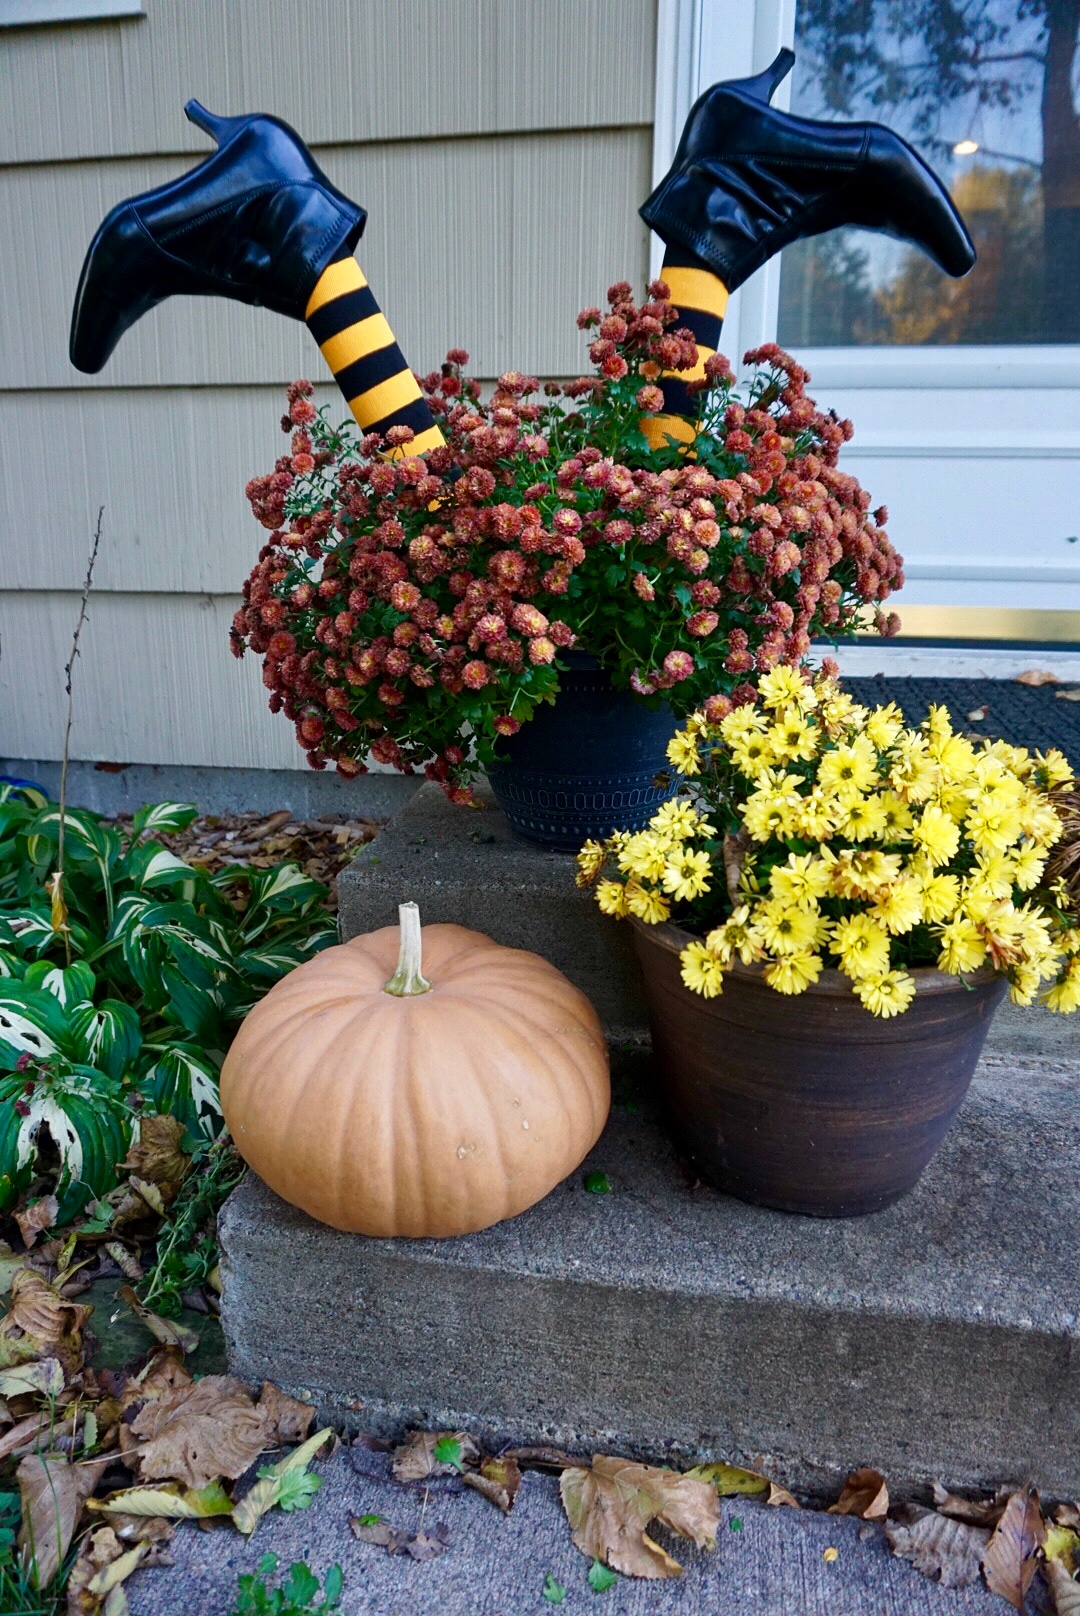 DIY witch legs make fall mum planters more festive! #halloweencrafts #halloweendiy #halloweendecorations